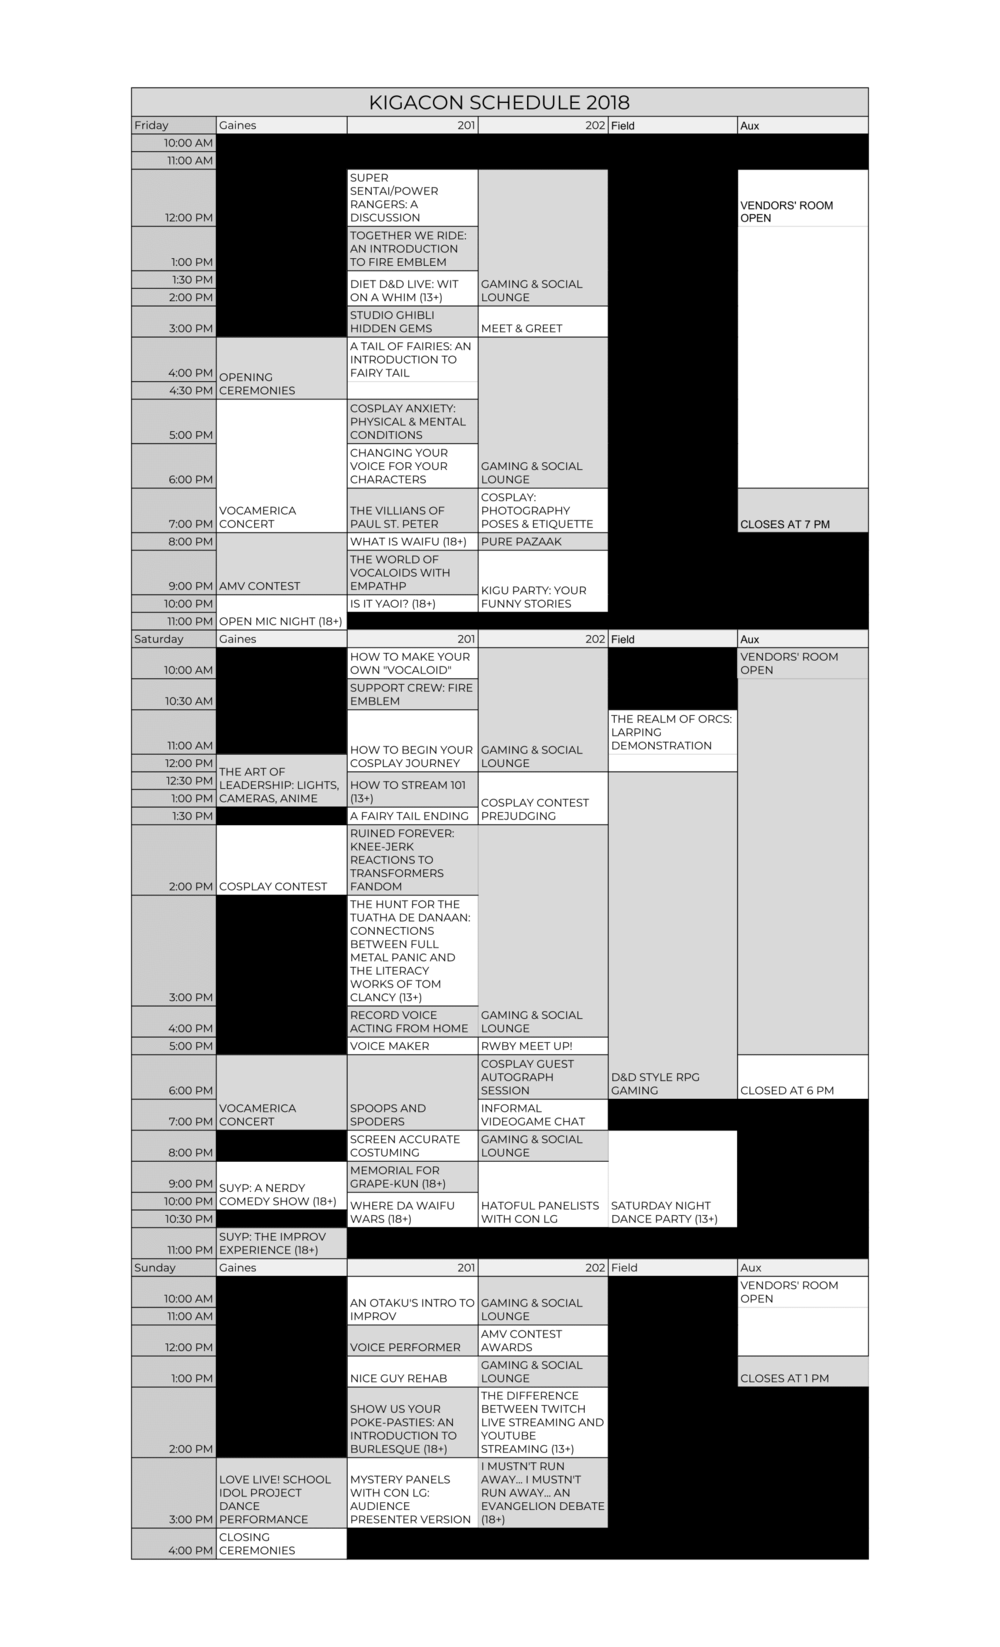 KIGACON 2018 CONVENTION SCHEDULE - FULL Convention Schedule (No Descriptions)-1.png